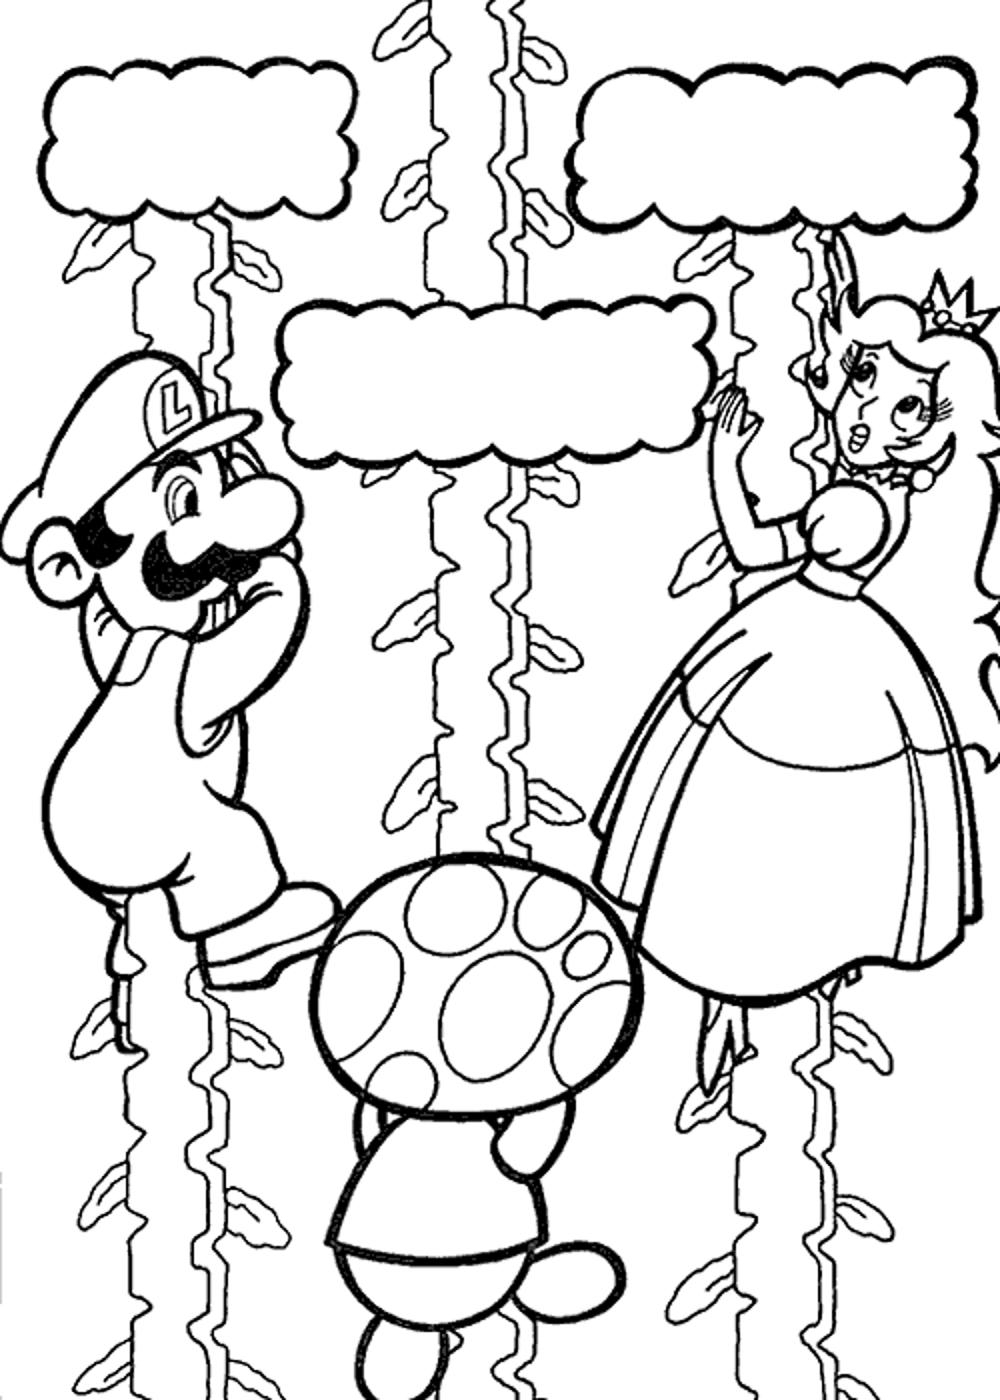 Super Mario Galaxy Coloring Pages Printable Of Toad Mario Drawing at Getdrawings Gallery